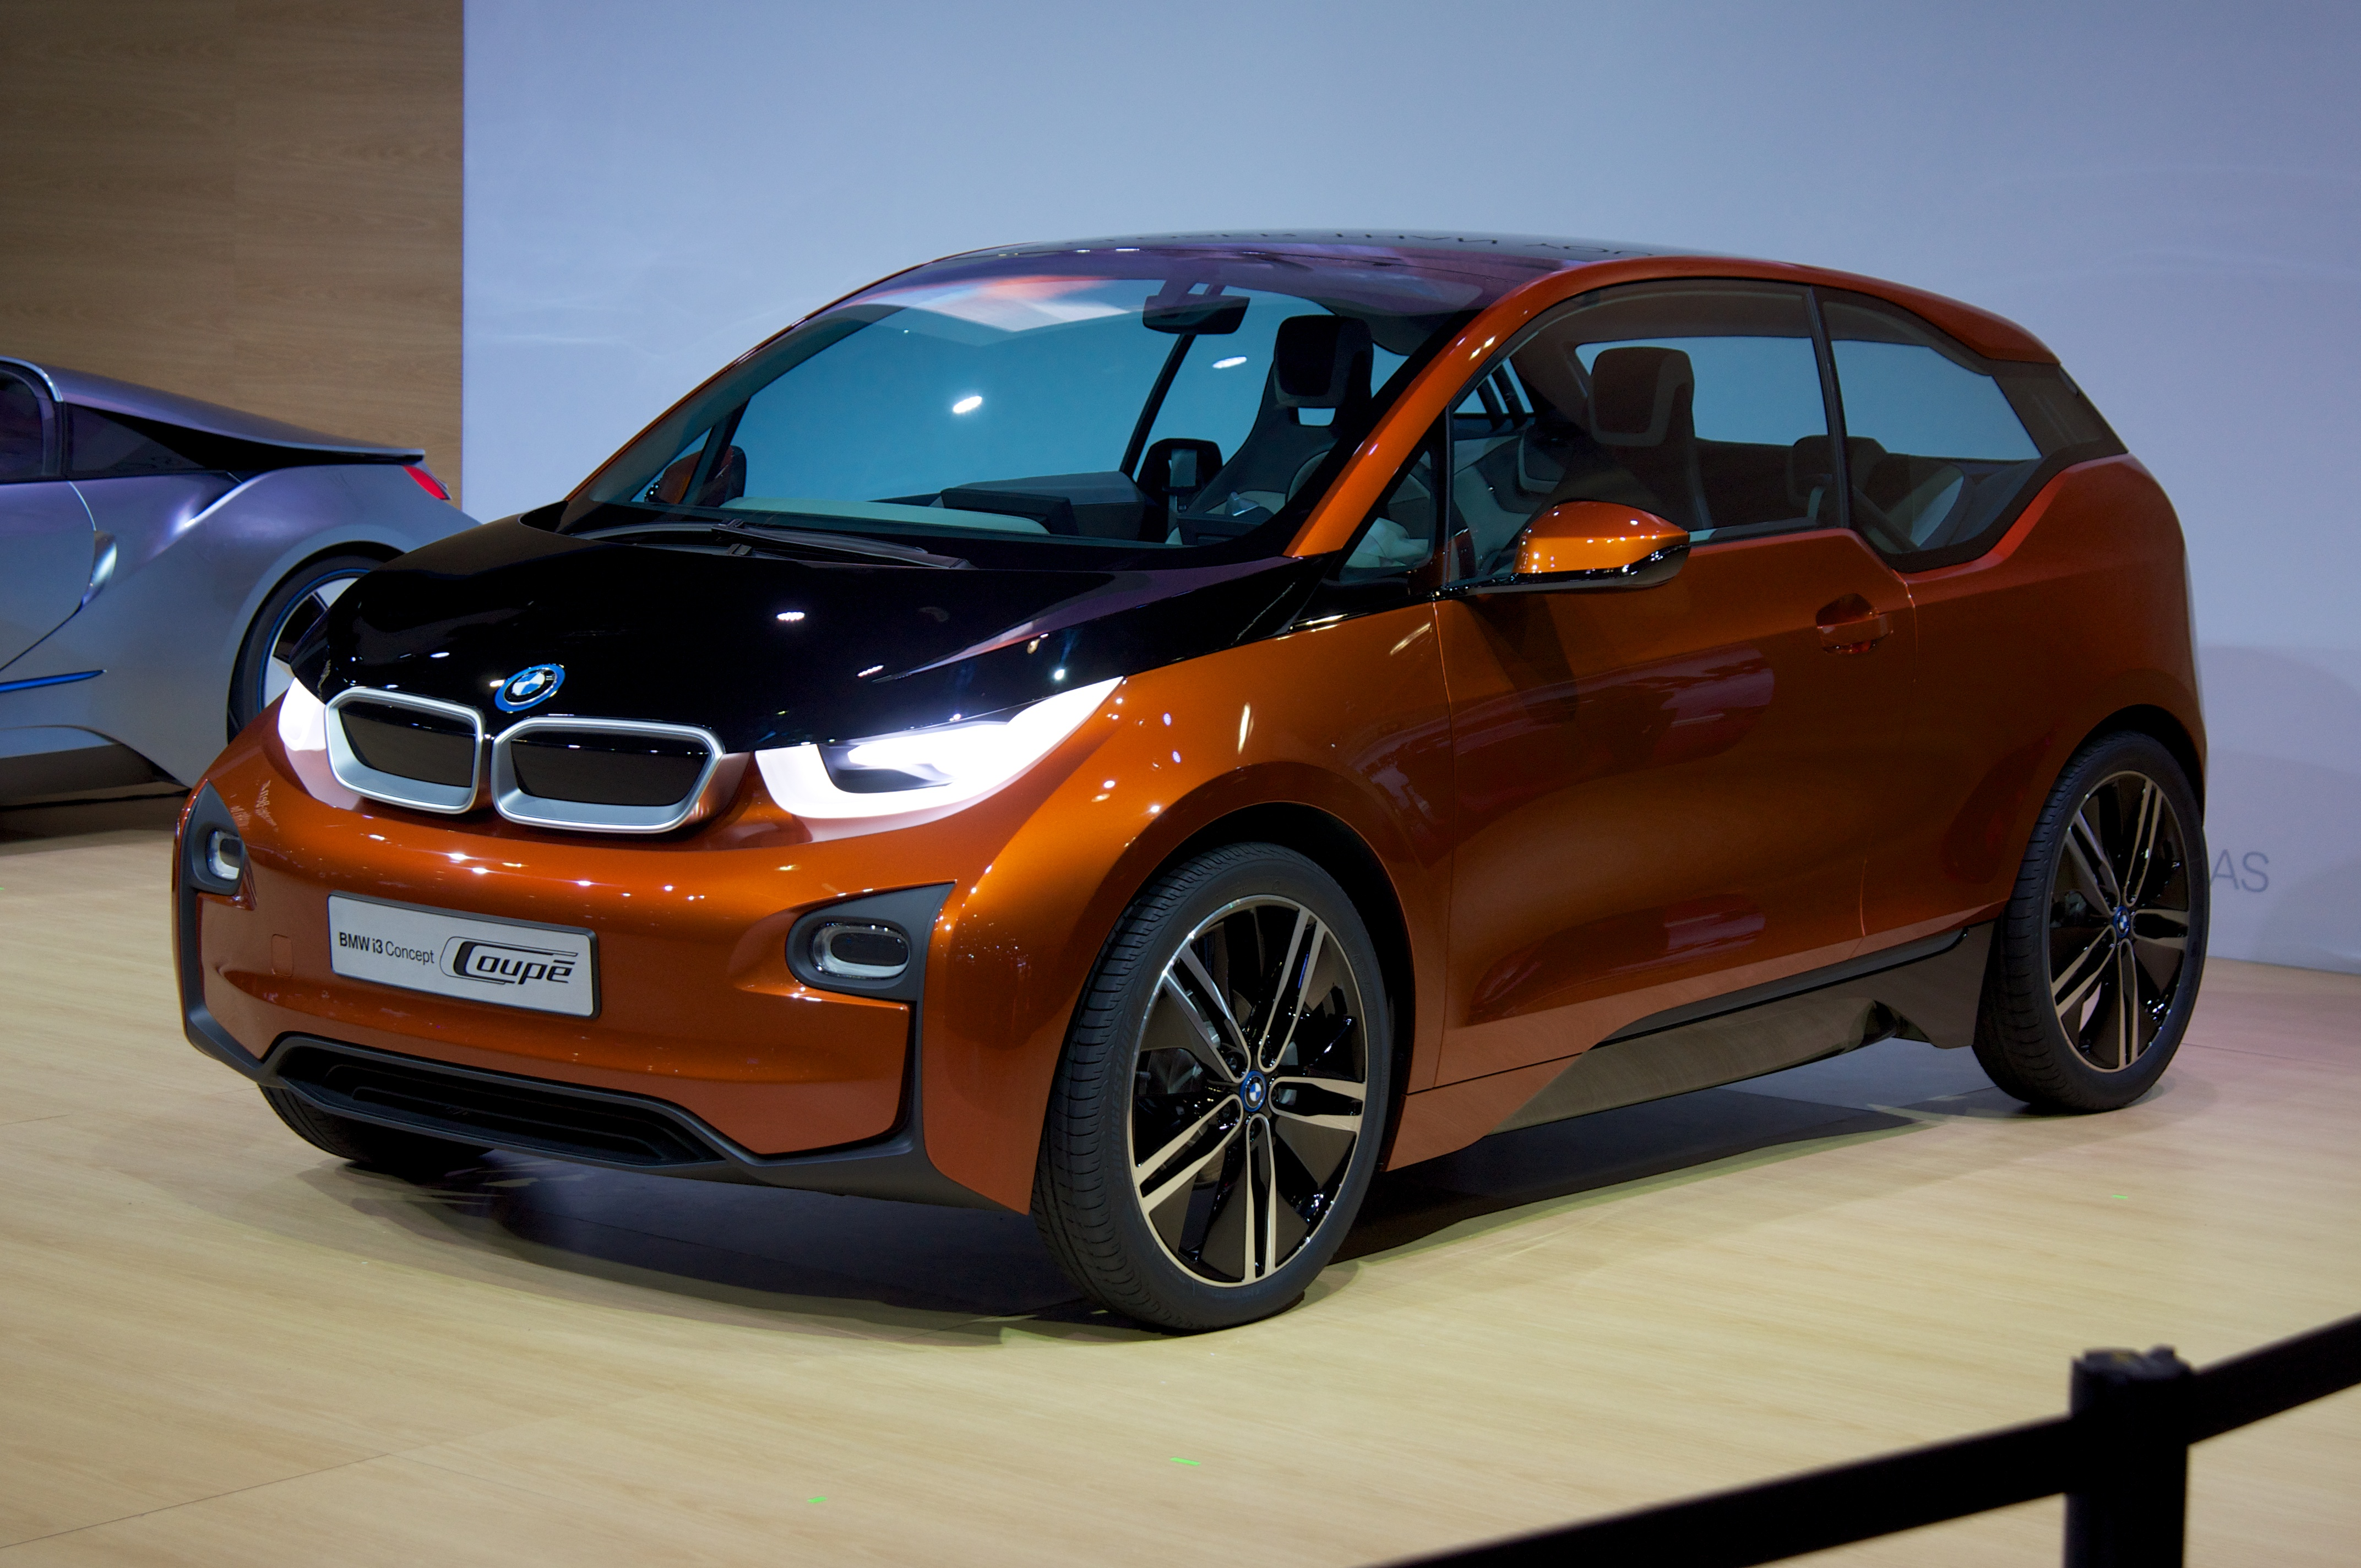 2014 bmw i3 annet bmw og motorprat bmw forum. Black Bedroom Furniture Sets. Home Design Ideas